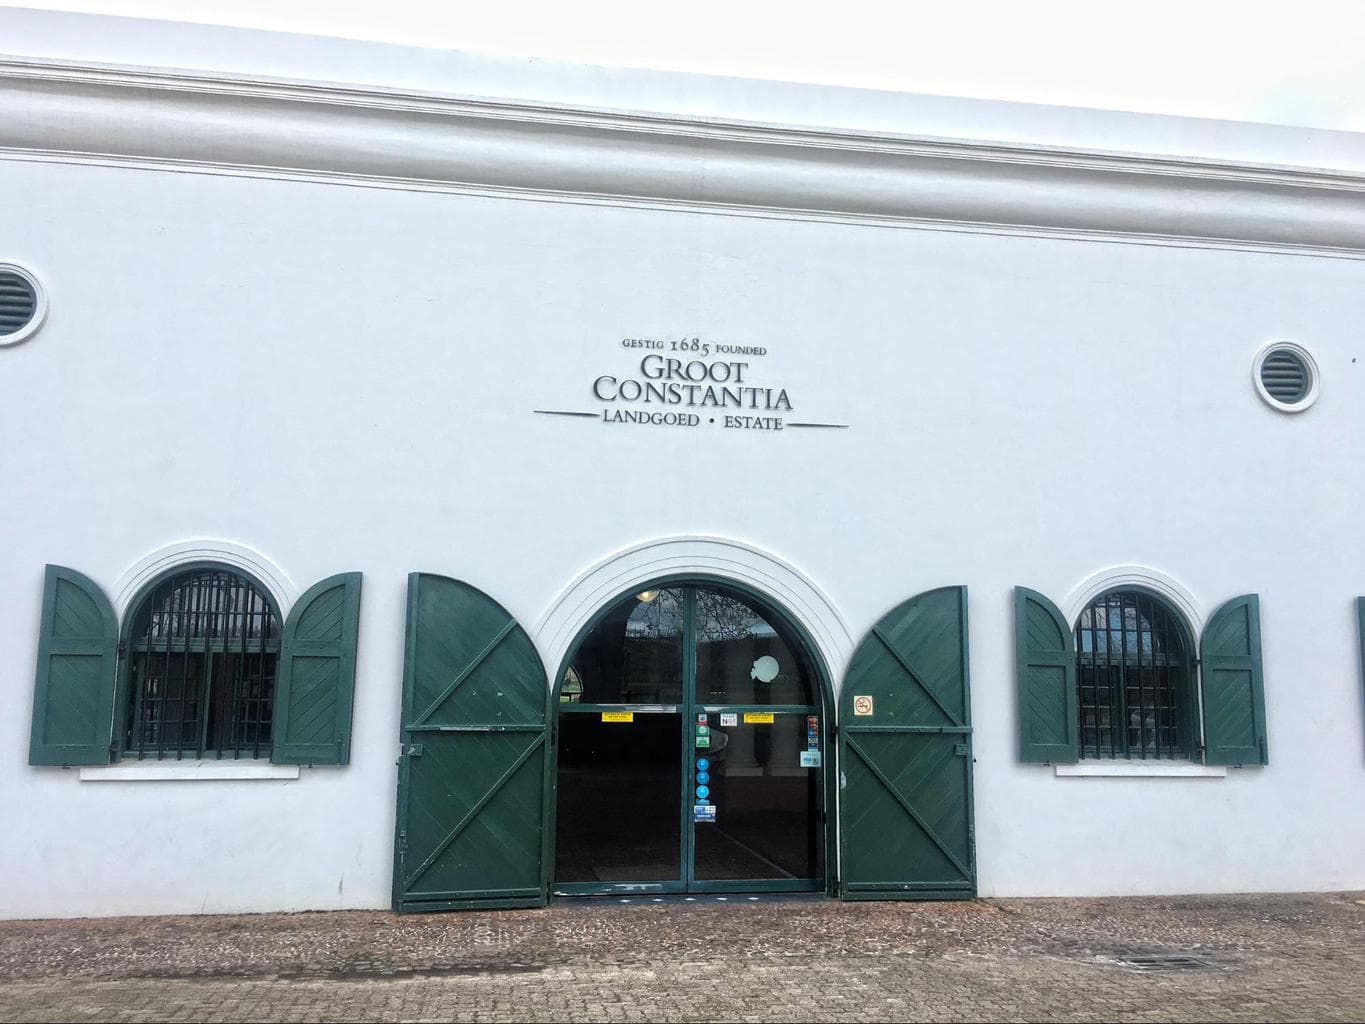 Entrance to tasting room at Groot Constantia